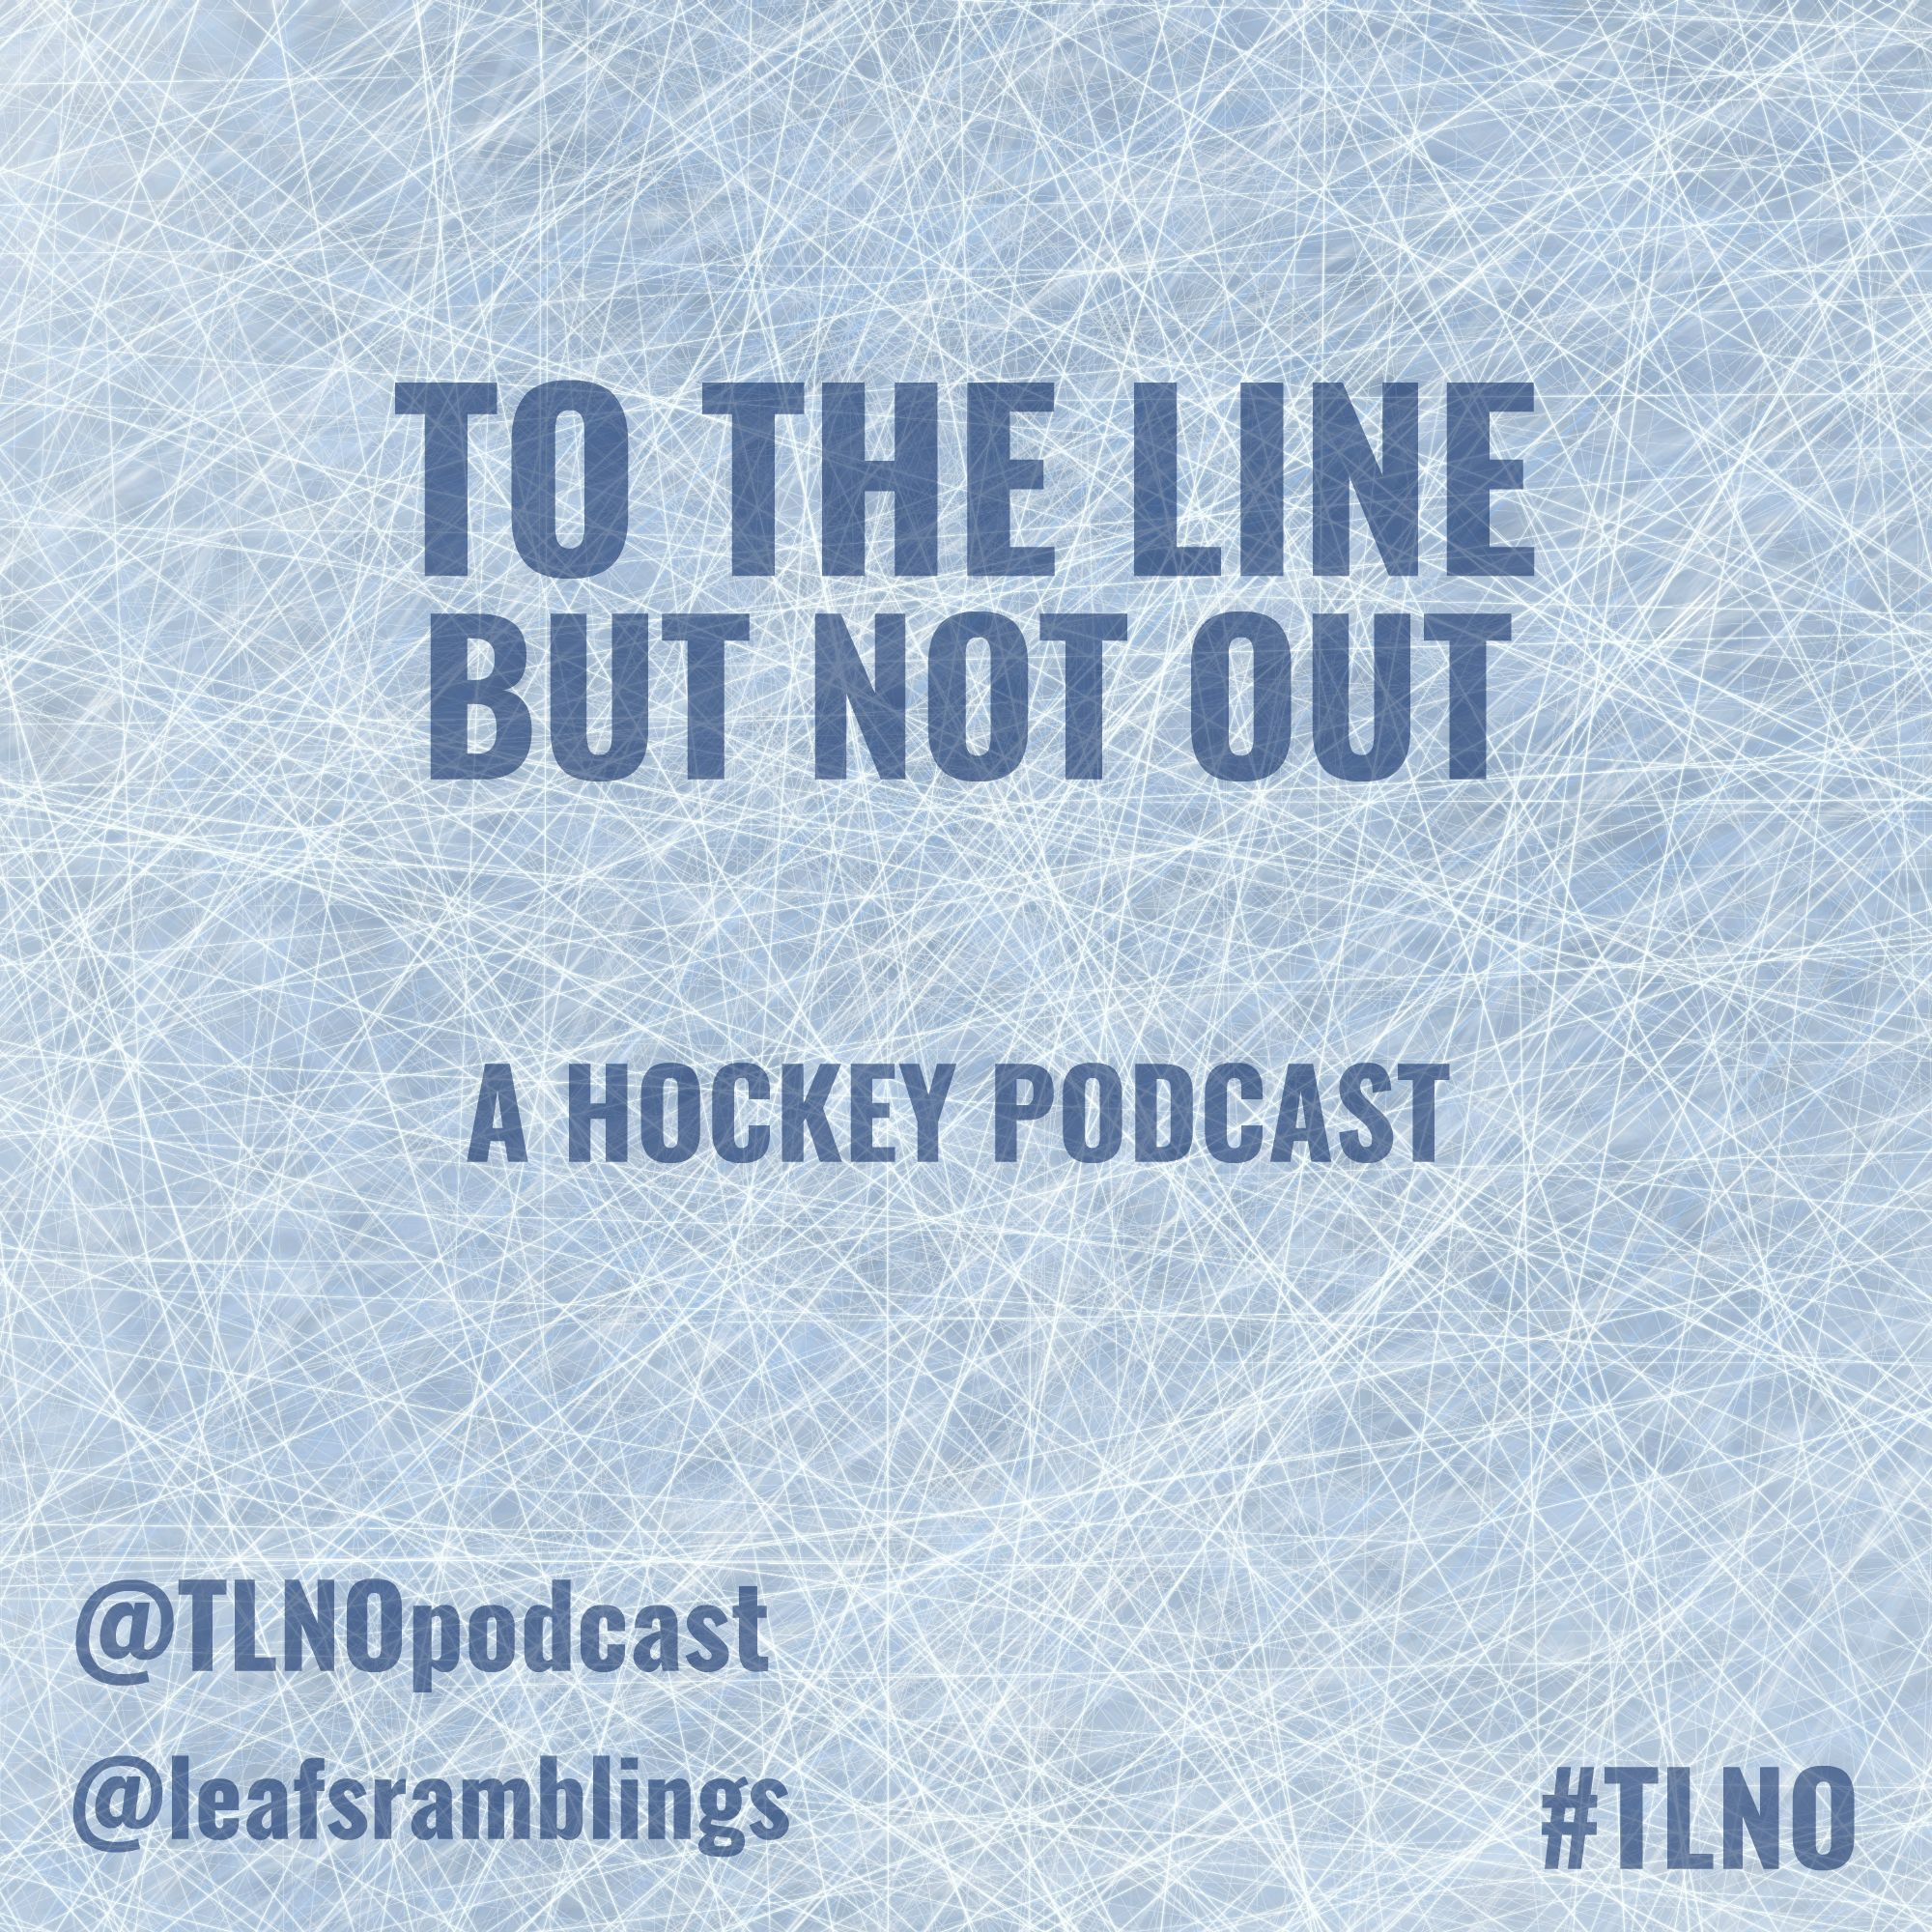 TLNO Episode 2 (2/11/16) - The D Boss